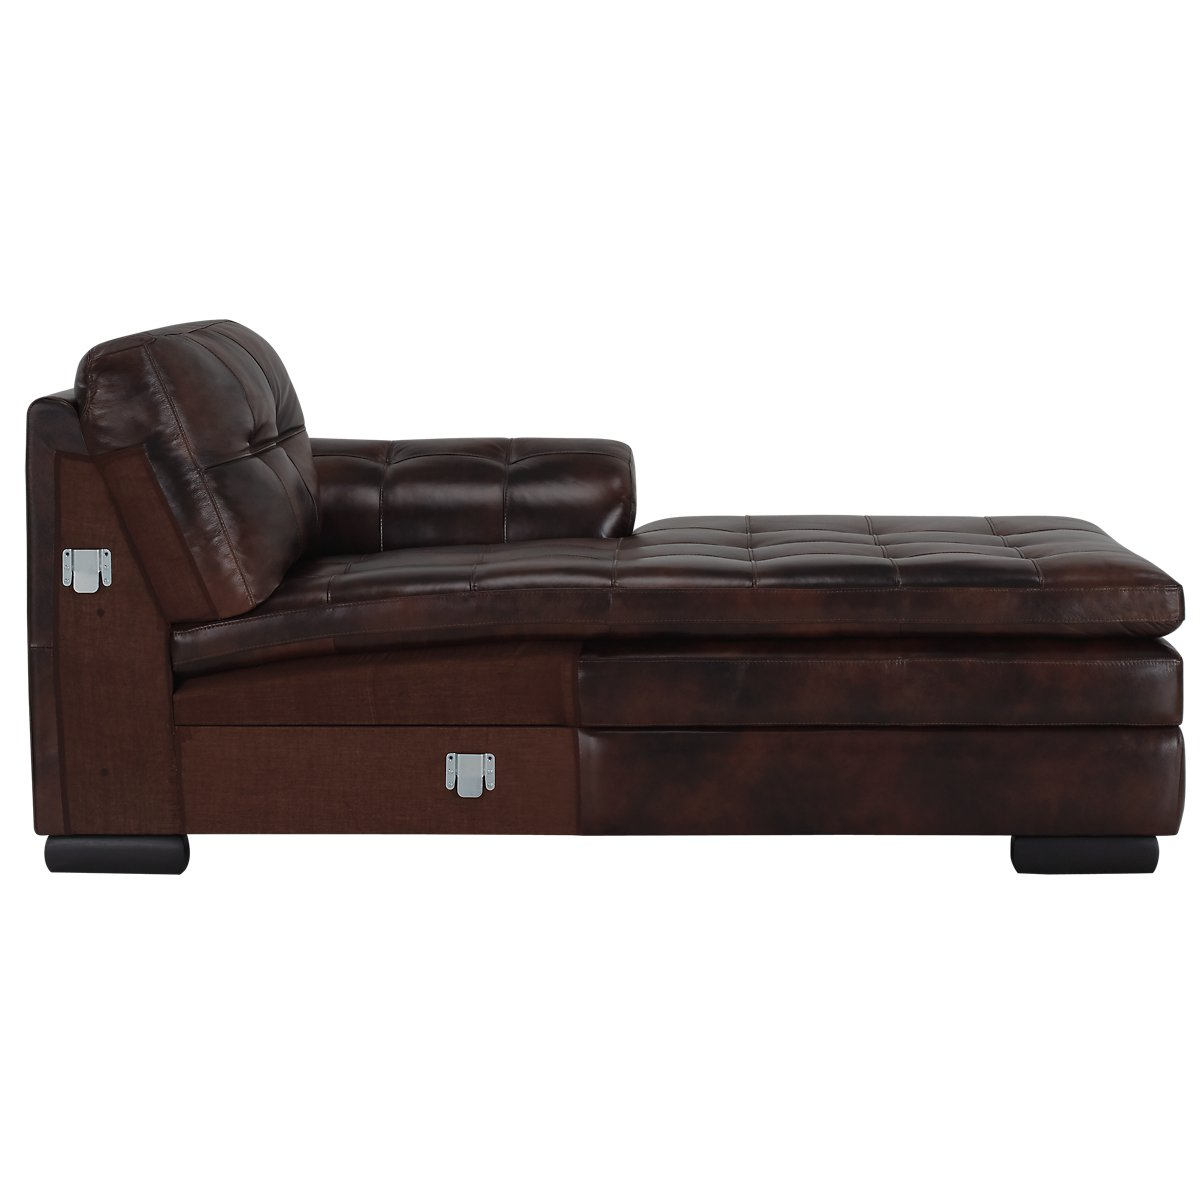 City furniture trevor dark brown leather large right for Brown leather chaise sofa